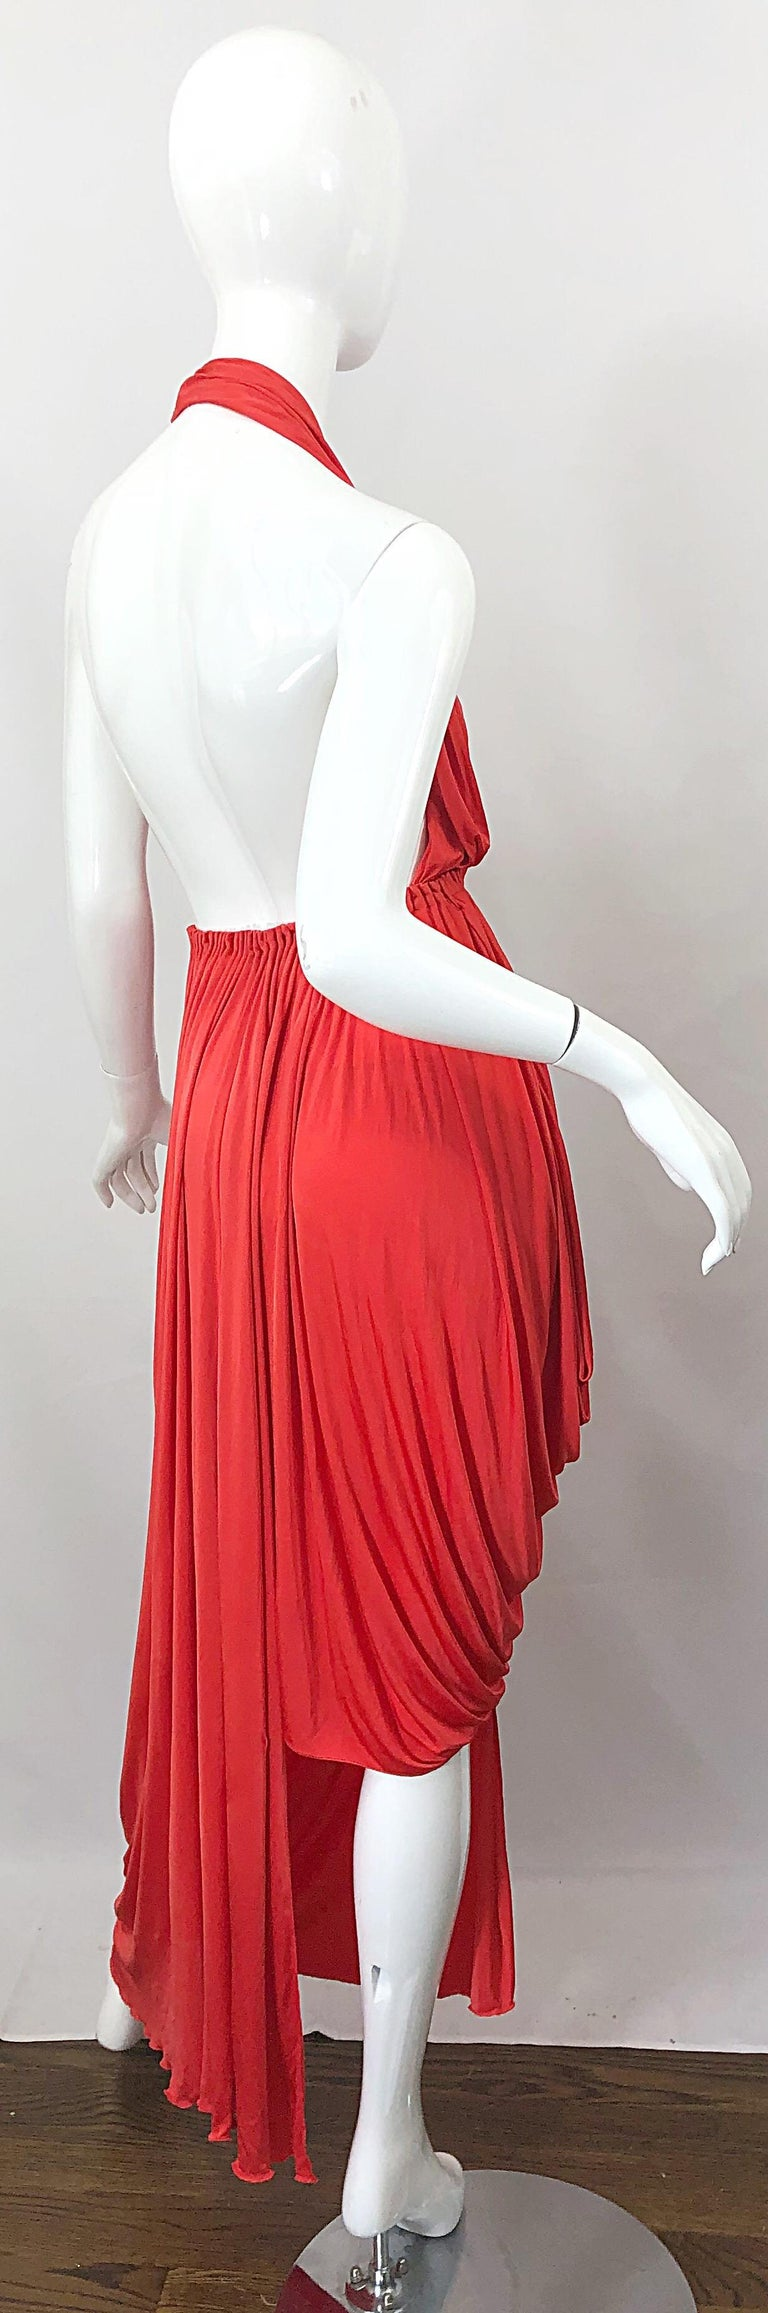 Vintage Halston Coral Silk Jersey Plunging Asymmetrical Hem Backless Gown Dress For Sale 10